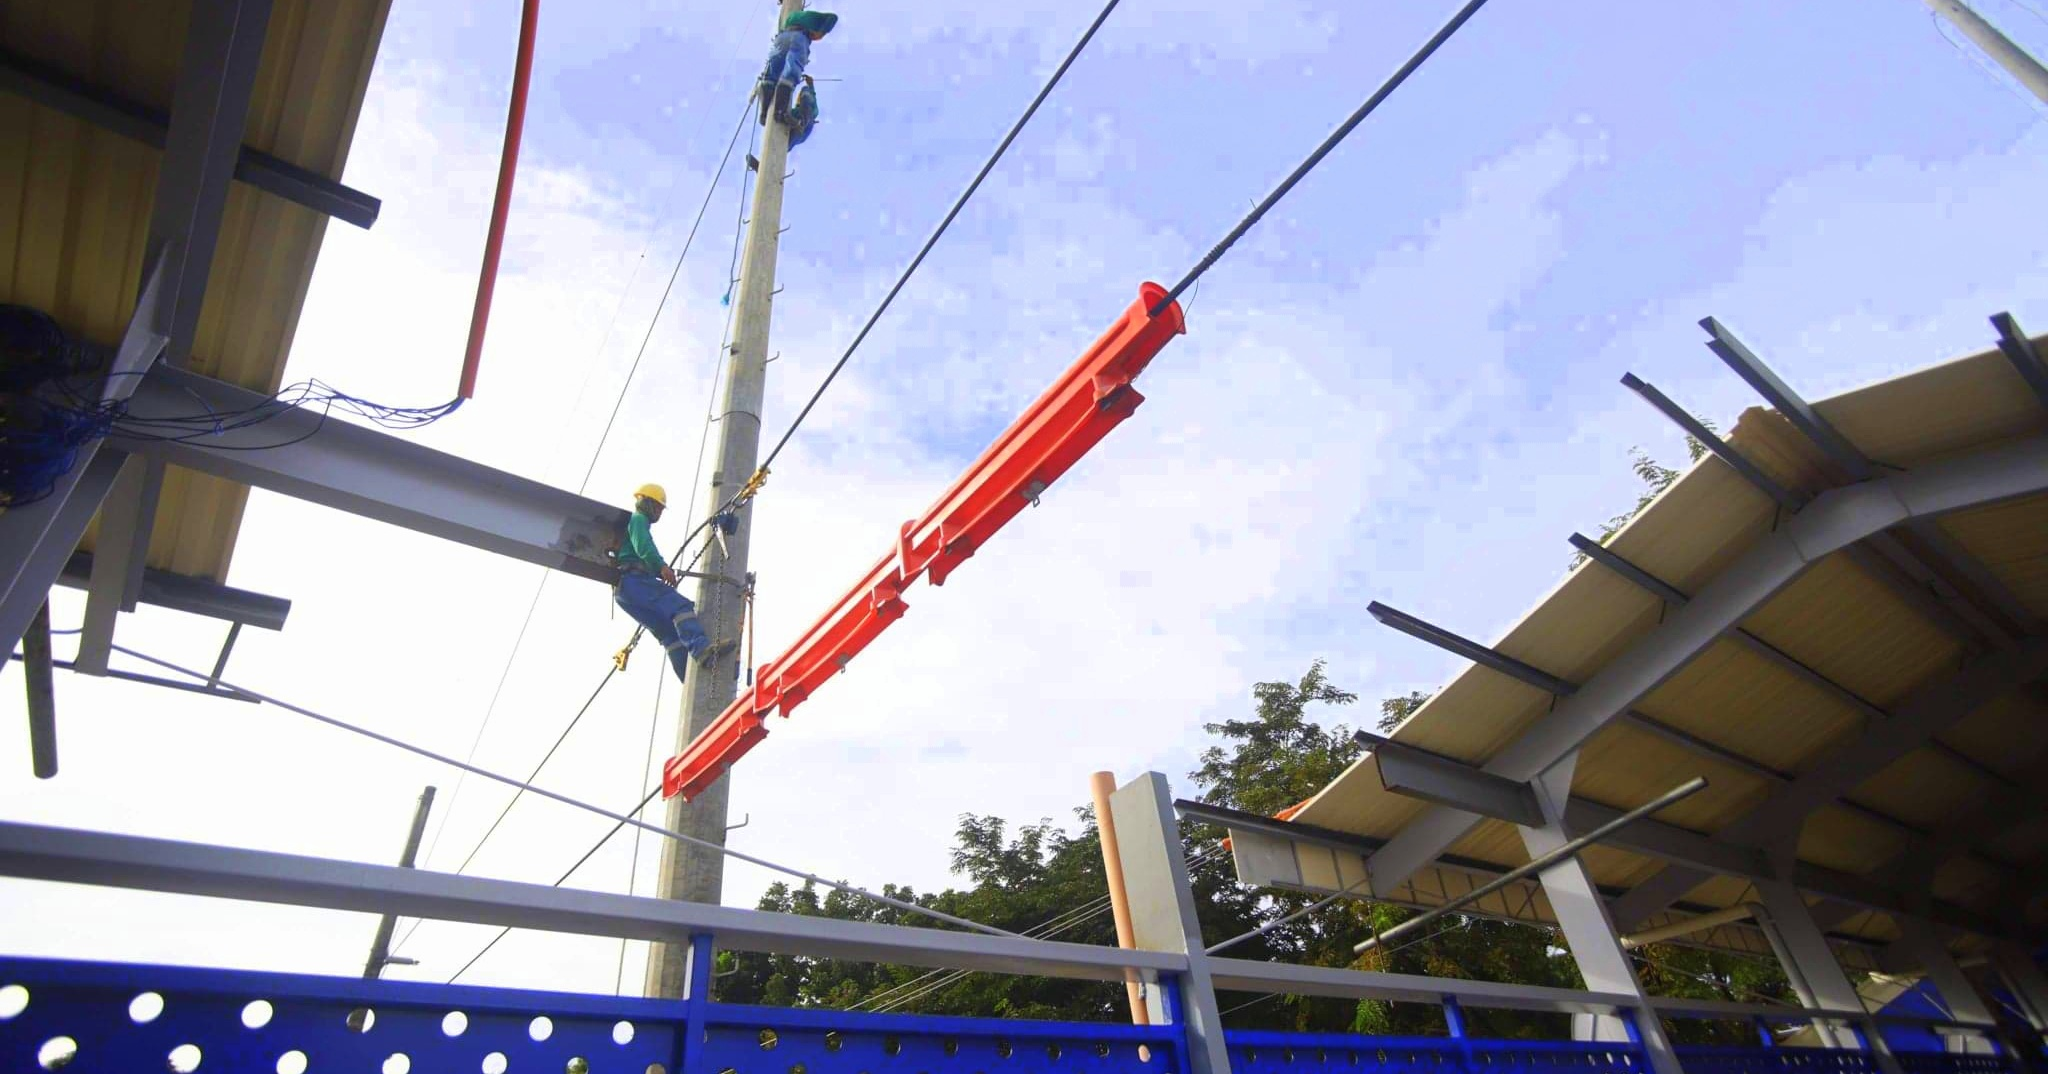 MORE Power clears ISAT-U overpass wire